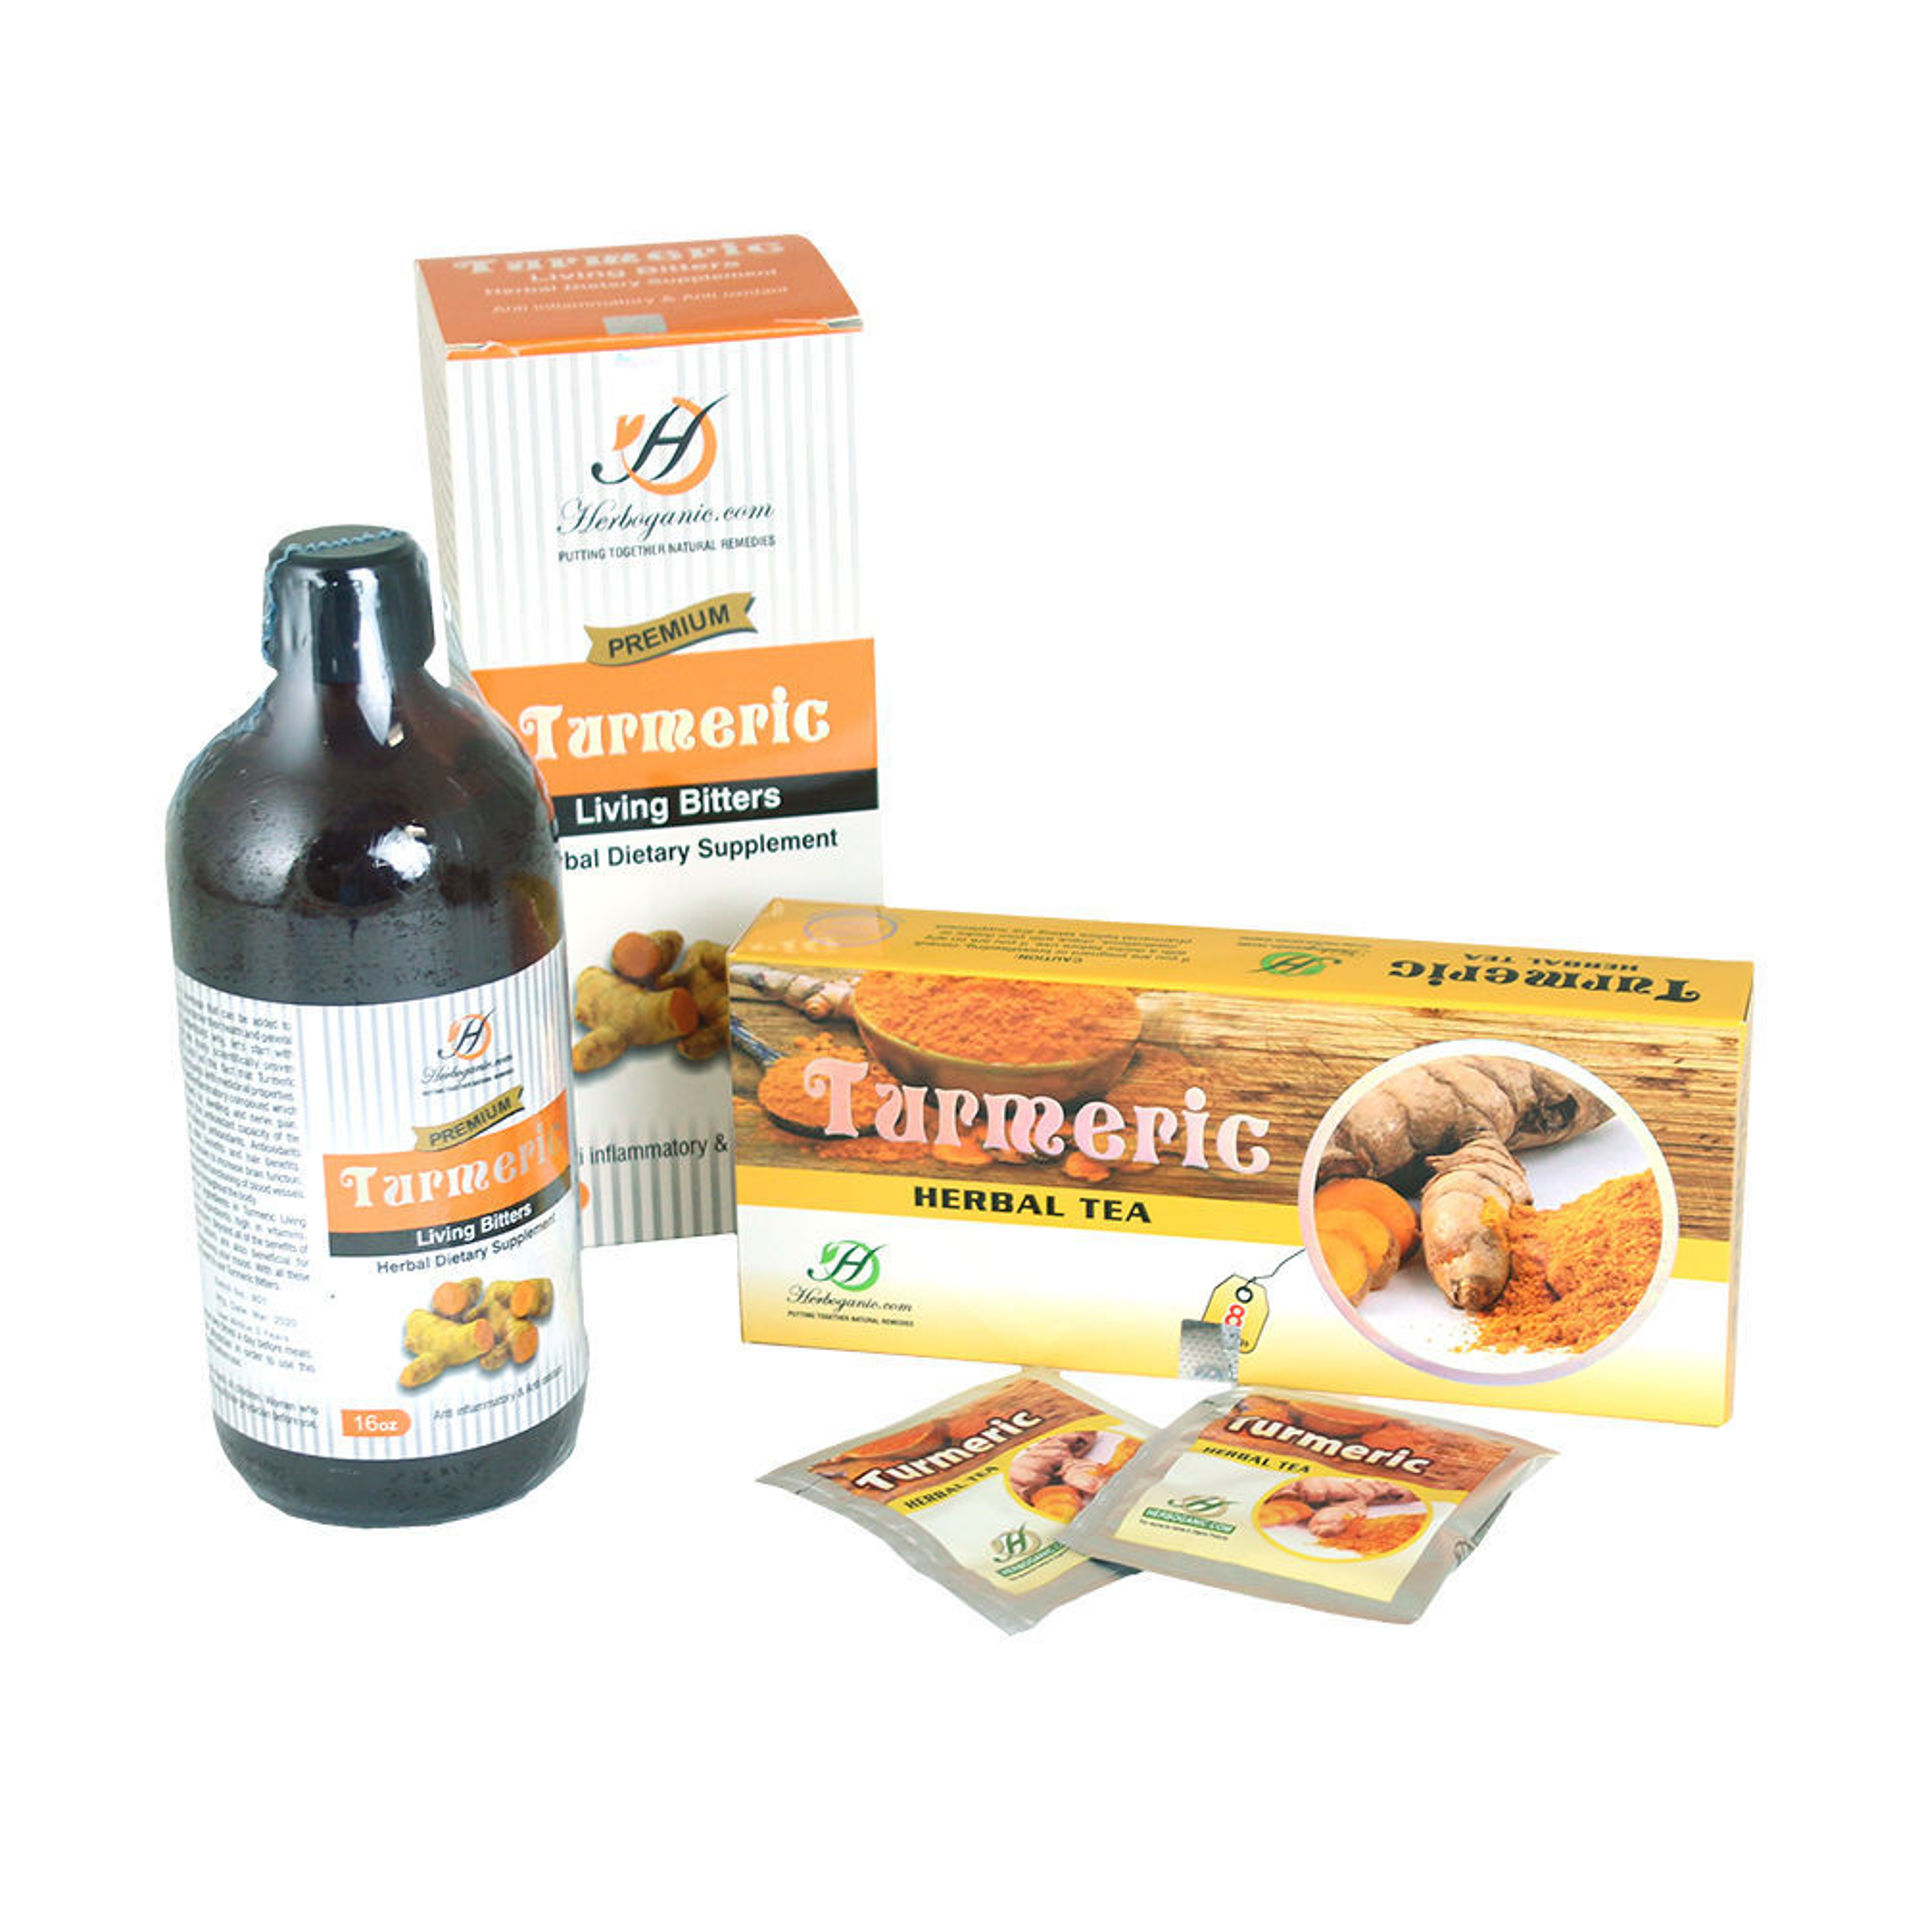 Picture of Turmeric Bitters Premium Box Set